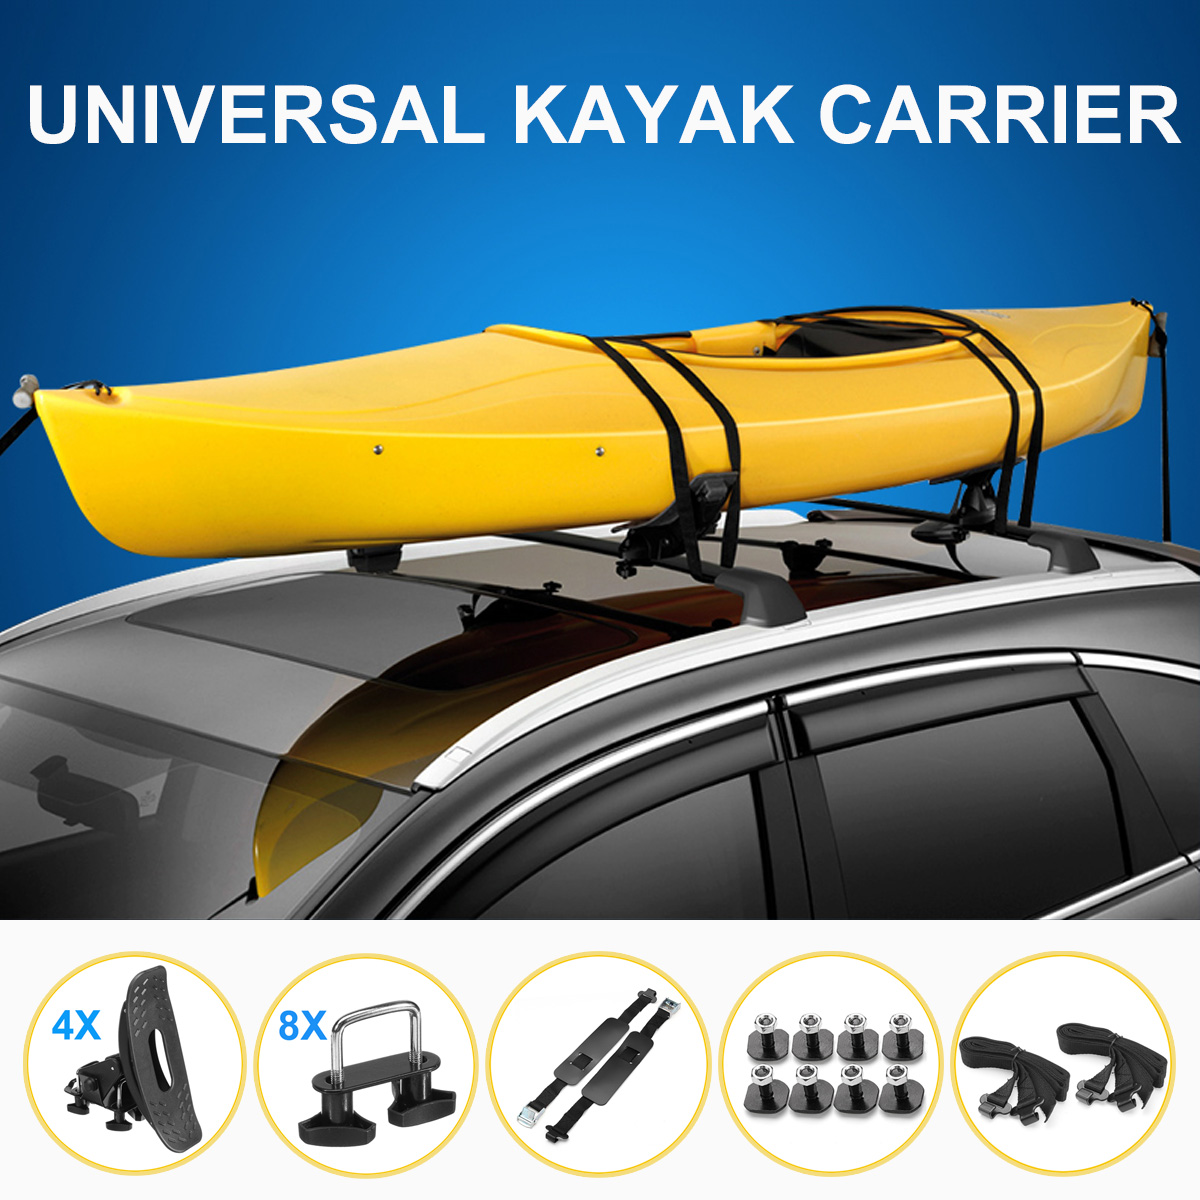 Universal Kayak Rack Holder Kayak Carrier Saddle Watercraft Roof Rack Arm Canoe Boat Car Roof Rack Kayak Accessories